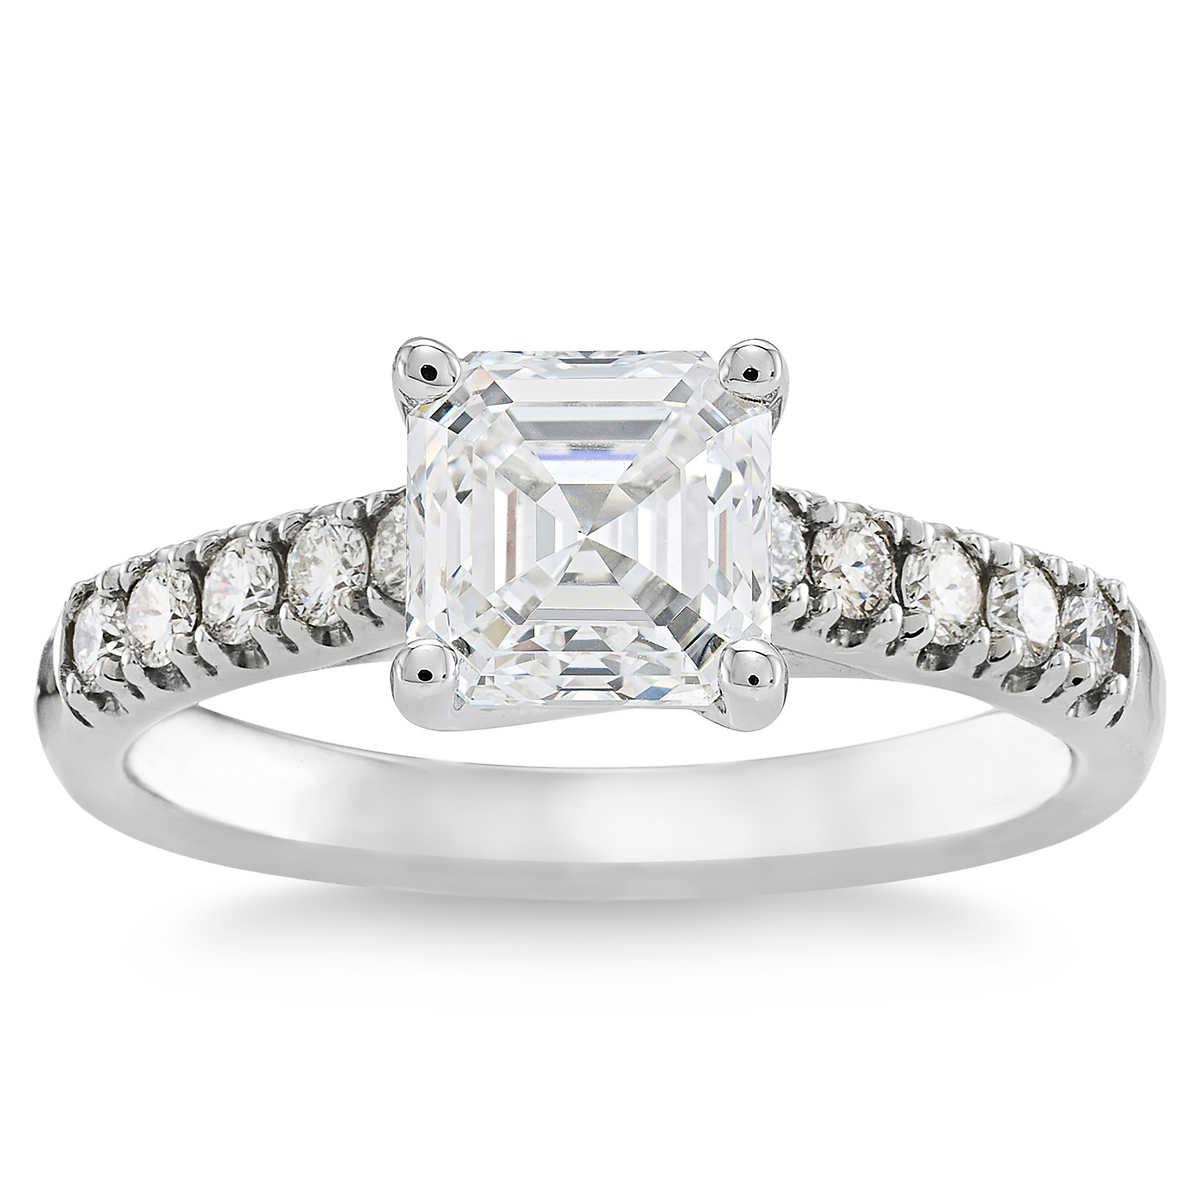 Square Emerald Cut 180 Ctw Vs1 Clarity G Color Diamond Platinum Ring